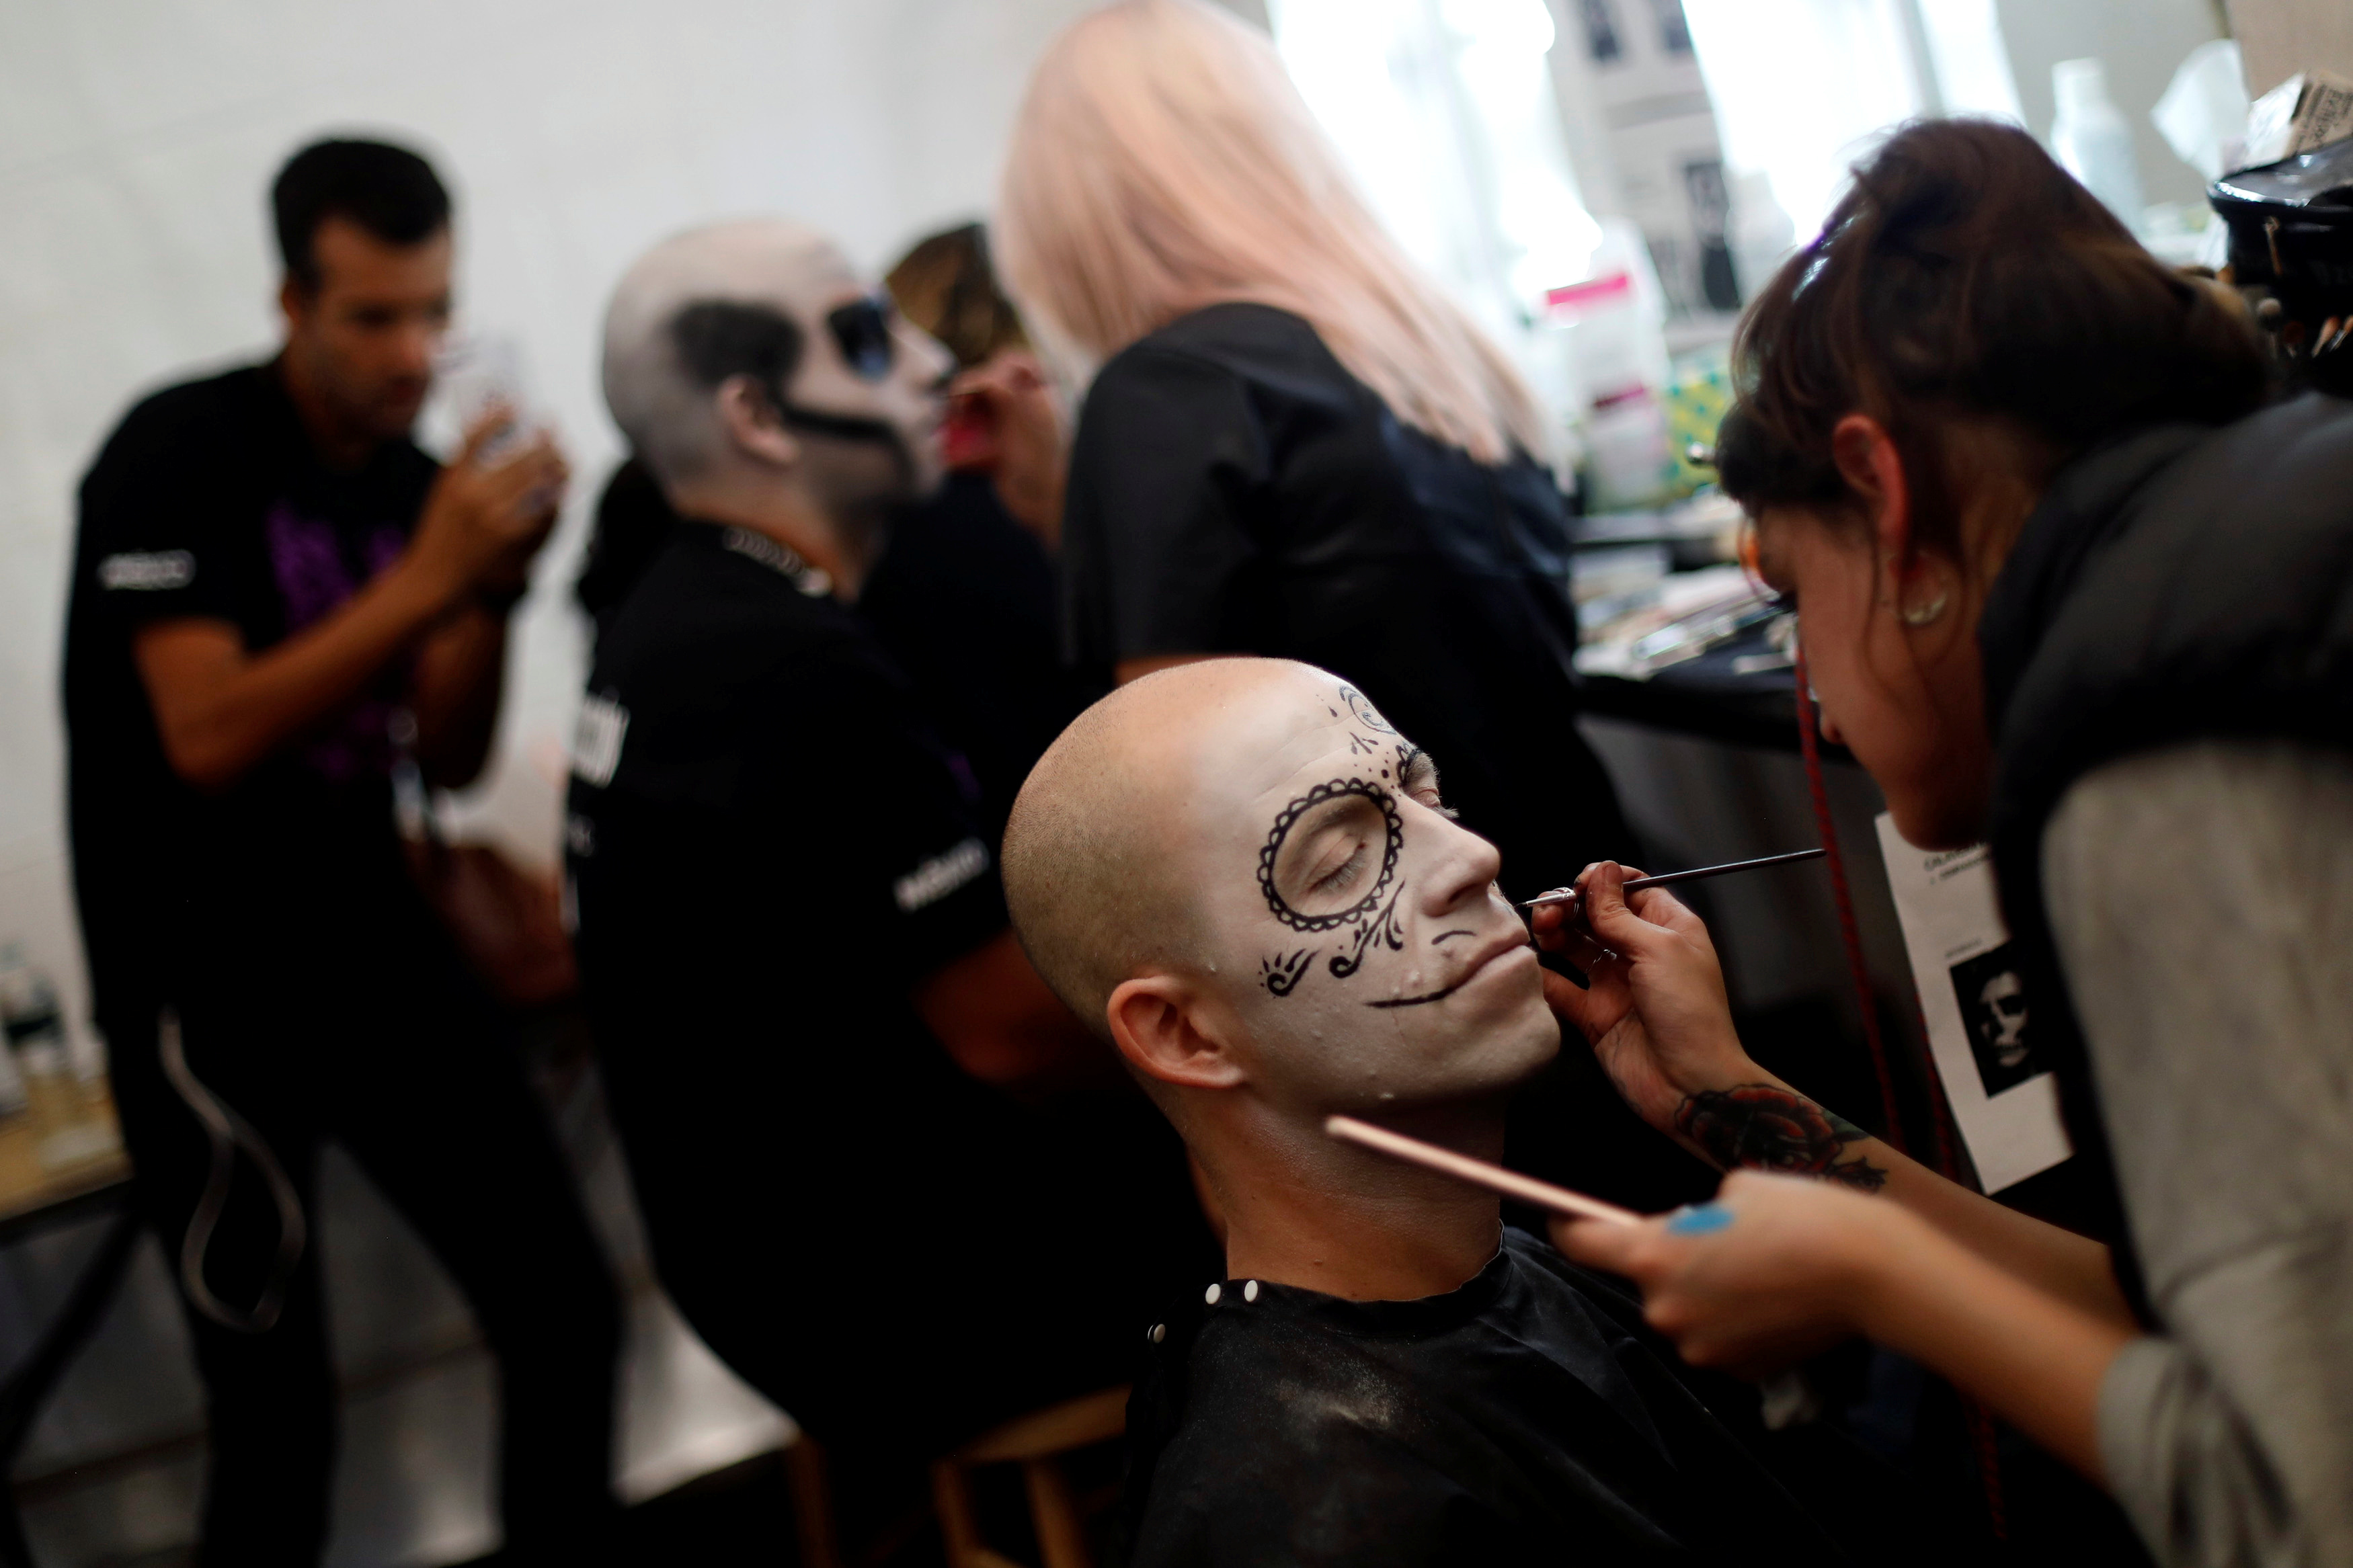 A man gets a make-up before taking part in a procession to commemorate Day of the Dead in Mexico City, Mexico, October 28, 2017. REUTERS/Edgard Garrido